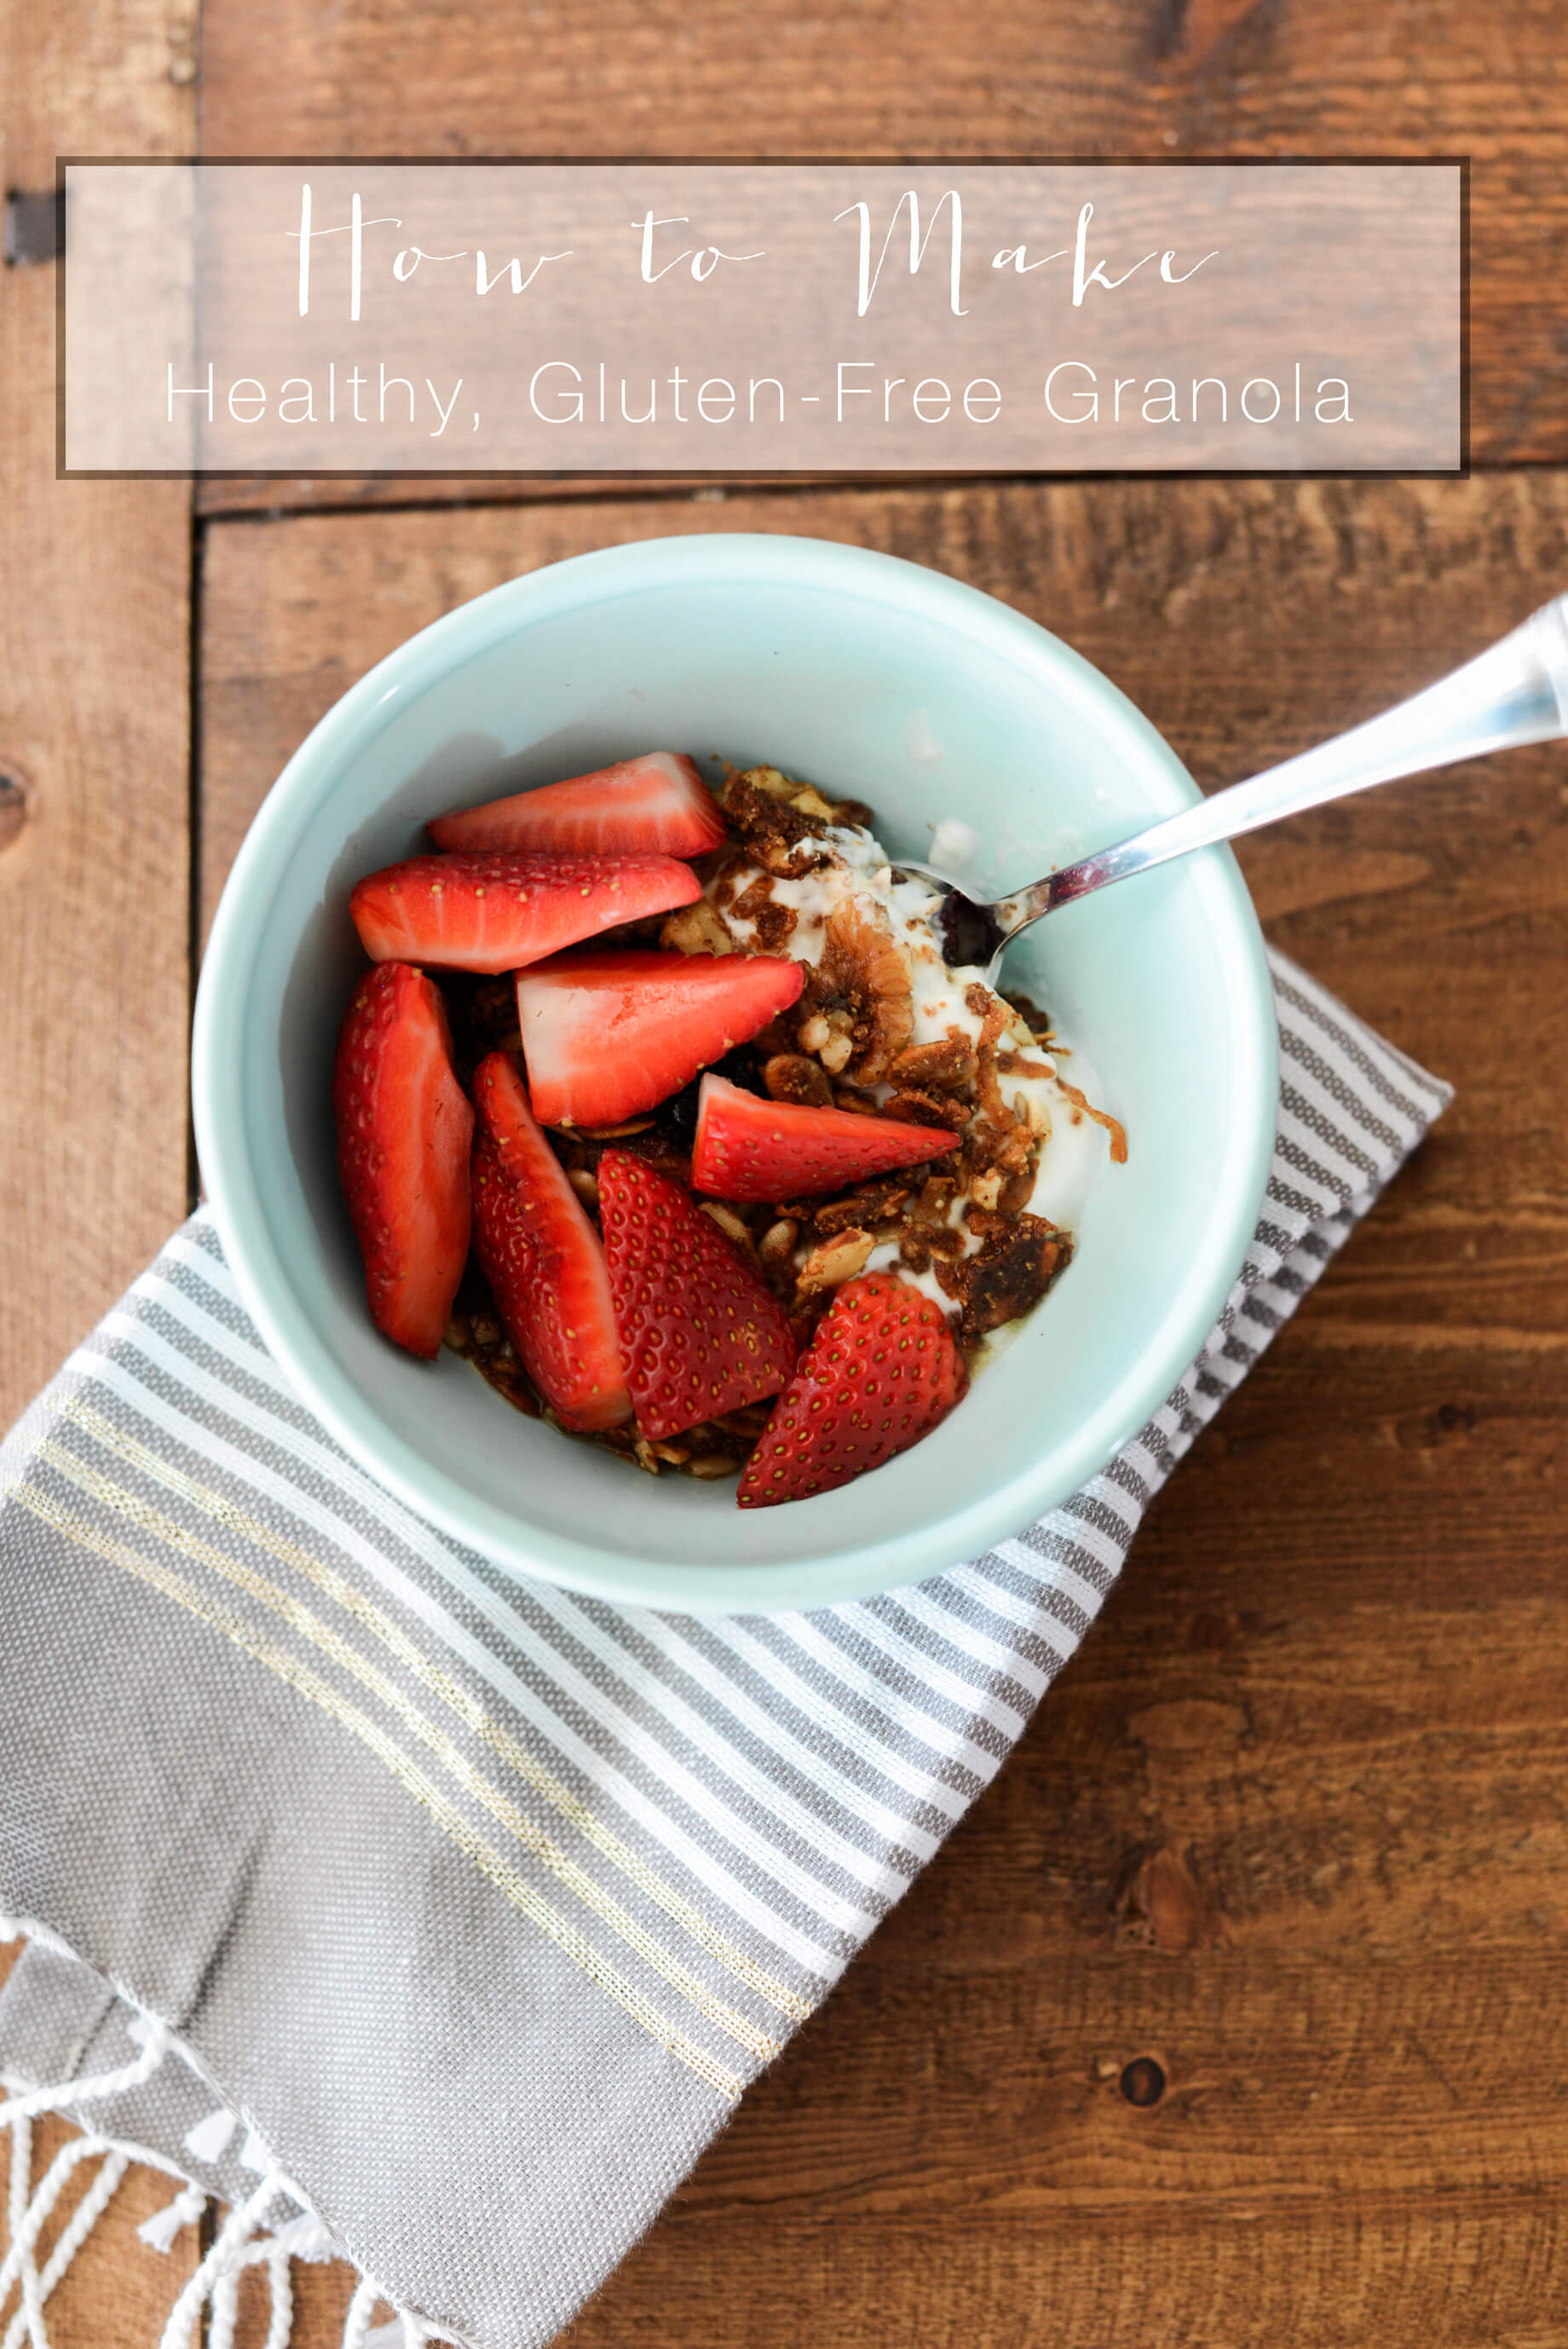 How to make healthy gluten-free granola recipe! | M Loves M @marmar